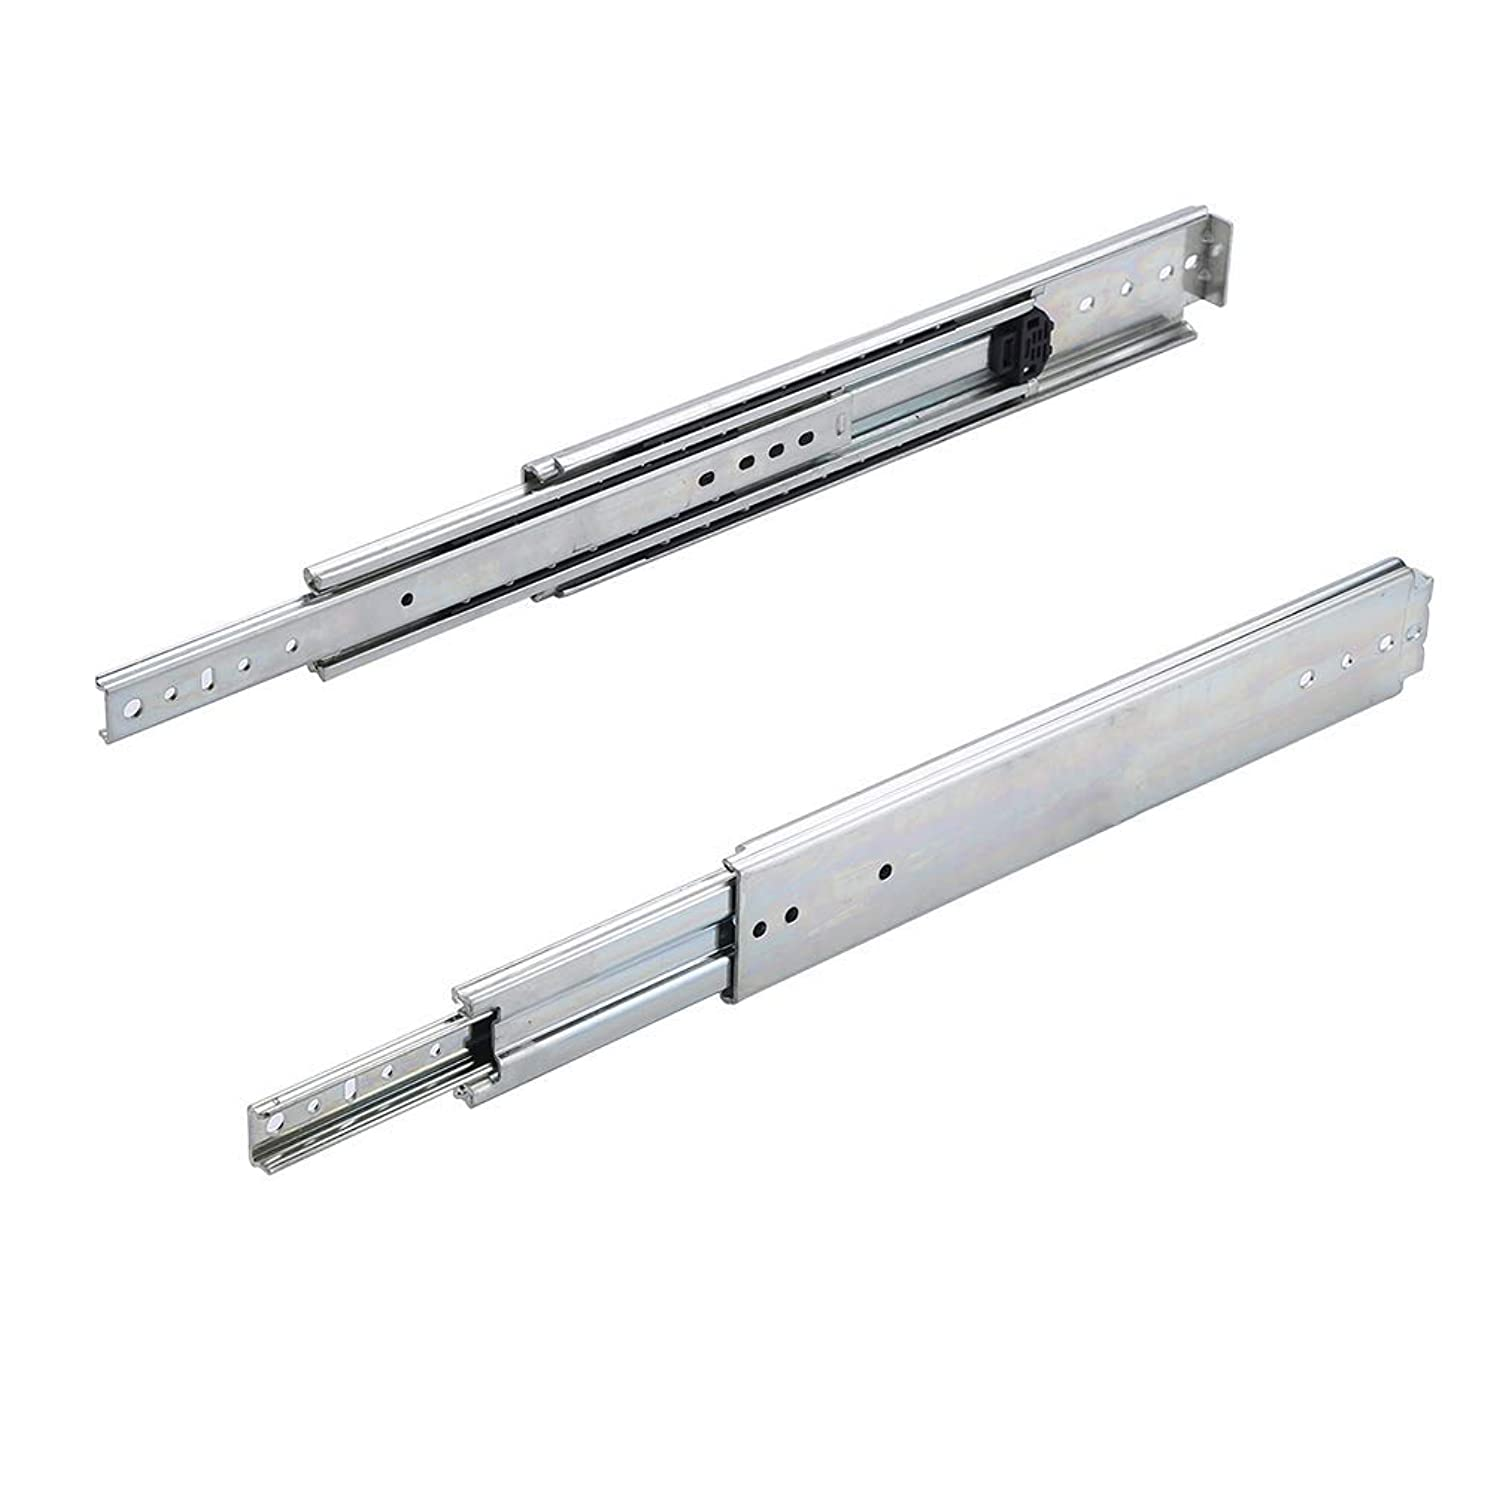 30 inch 500LB Capacity Heavy Duty Full Extension Ball Bearing Side Mount Drawer Slides - 1 Pairs,Mounting Screws Included, Available in 26'',28'',30'',32'',34'',36'' Length